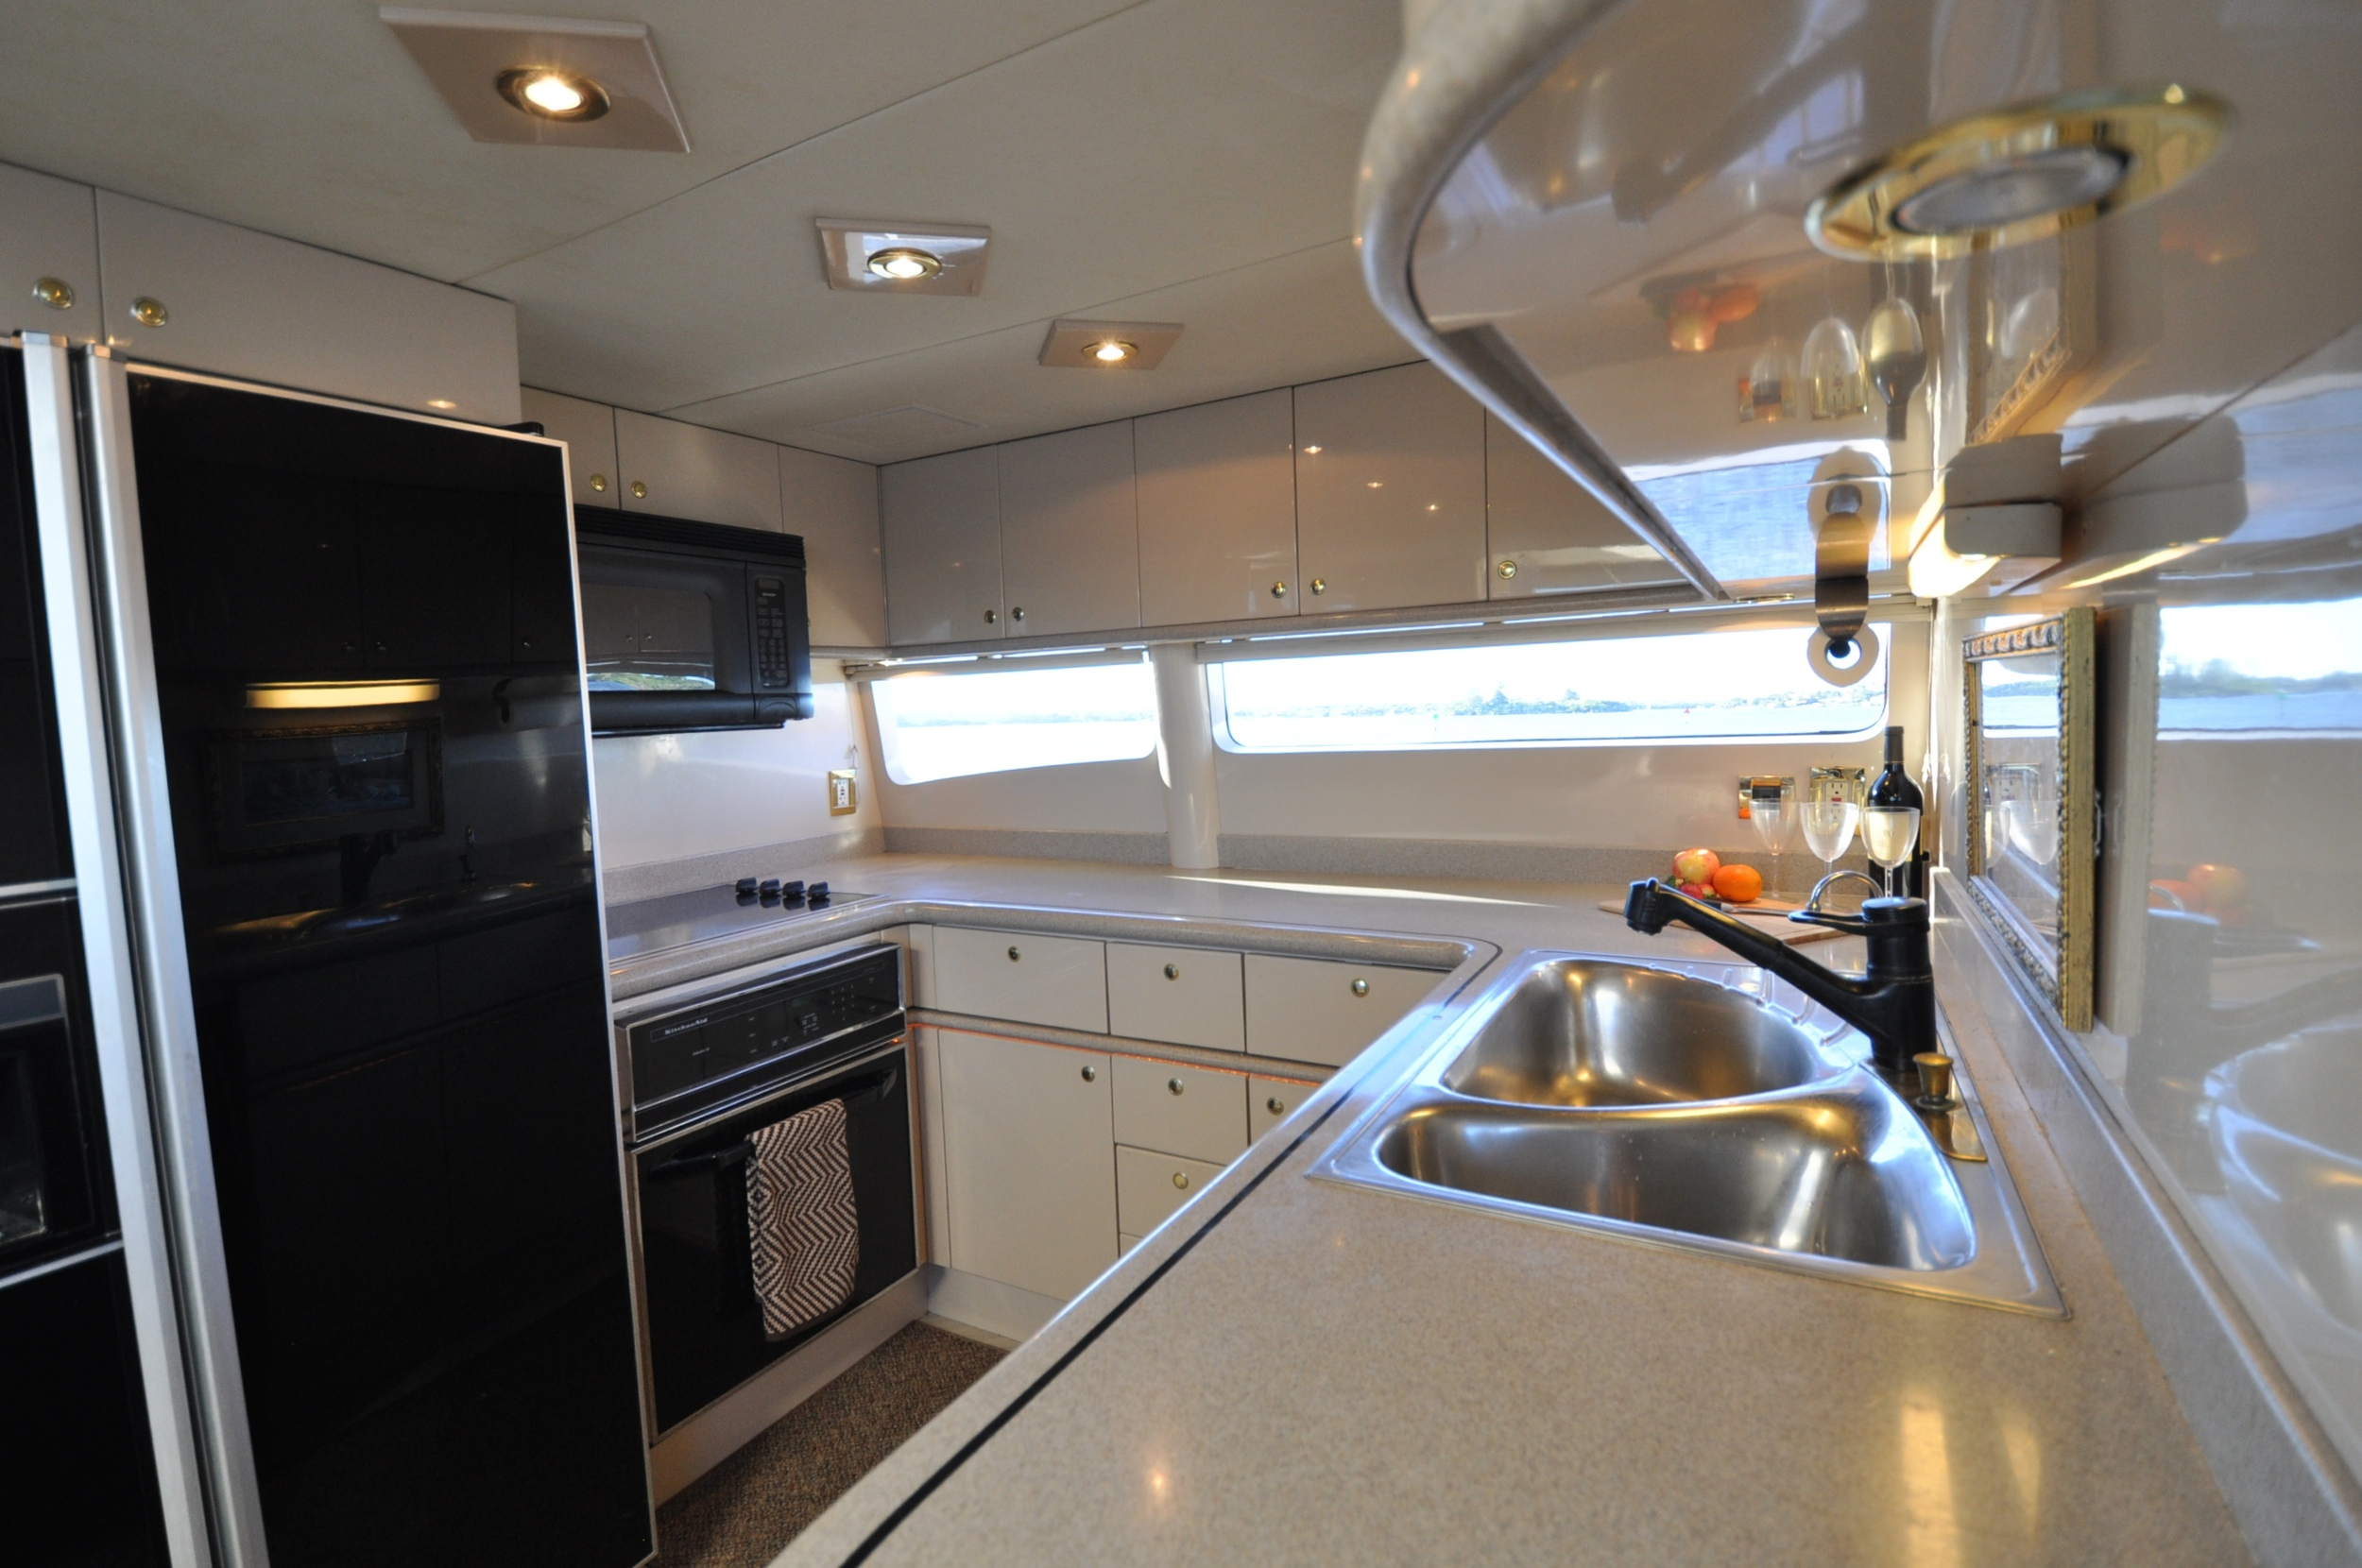 25 - Galley detail: sink counter.JPG